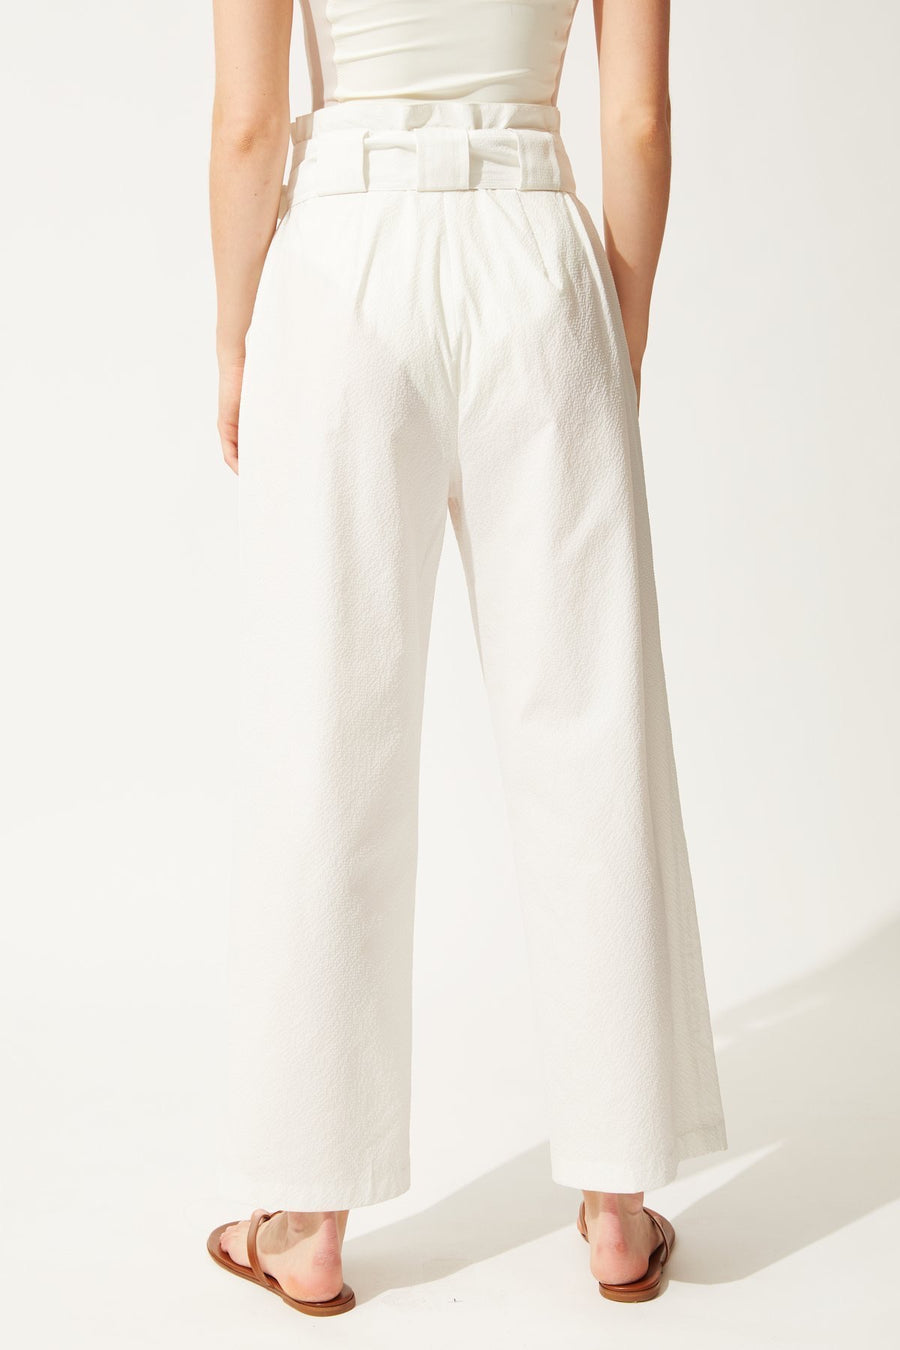 White High Waisted Pants